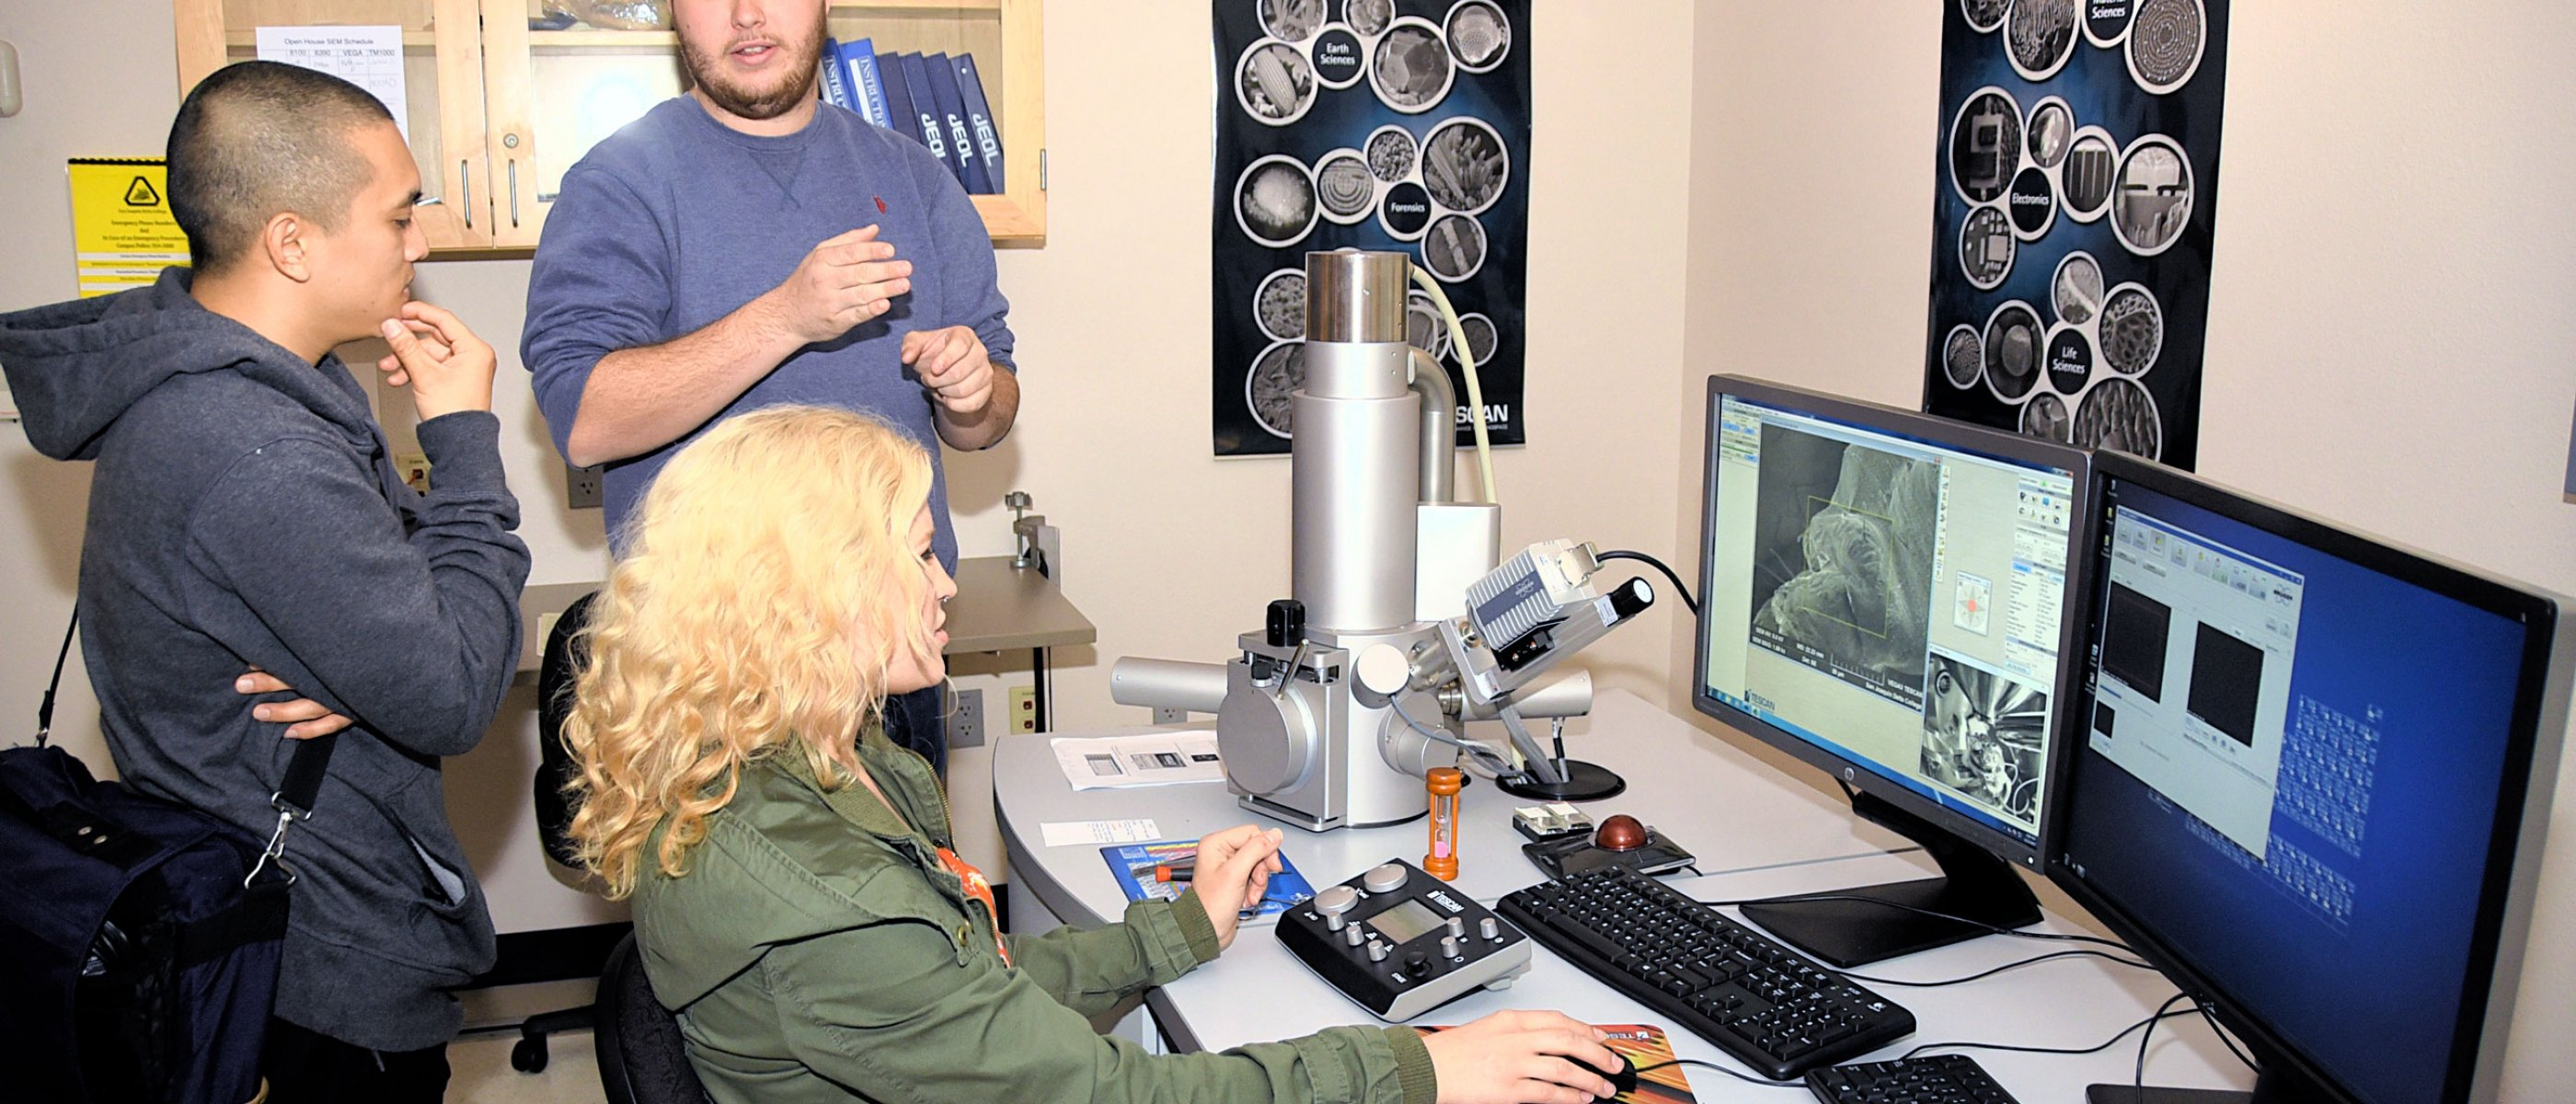 Students work in the electron microscopy lab